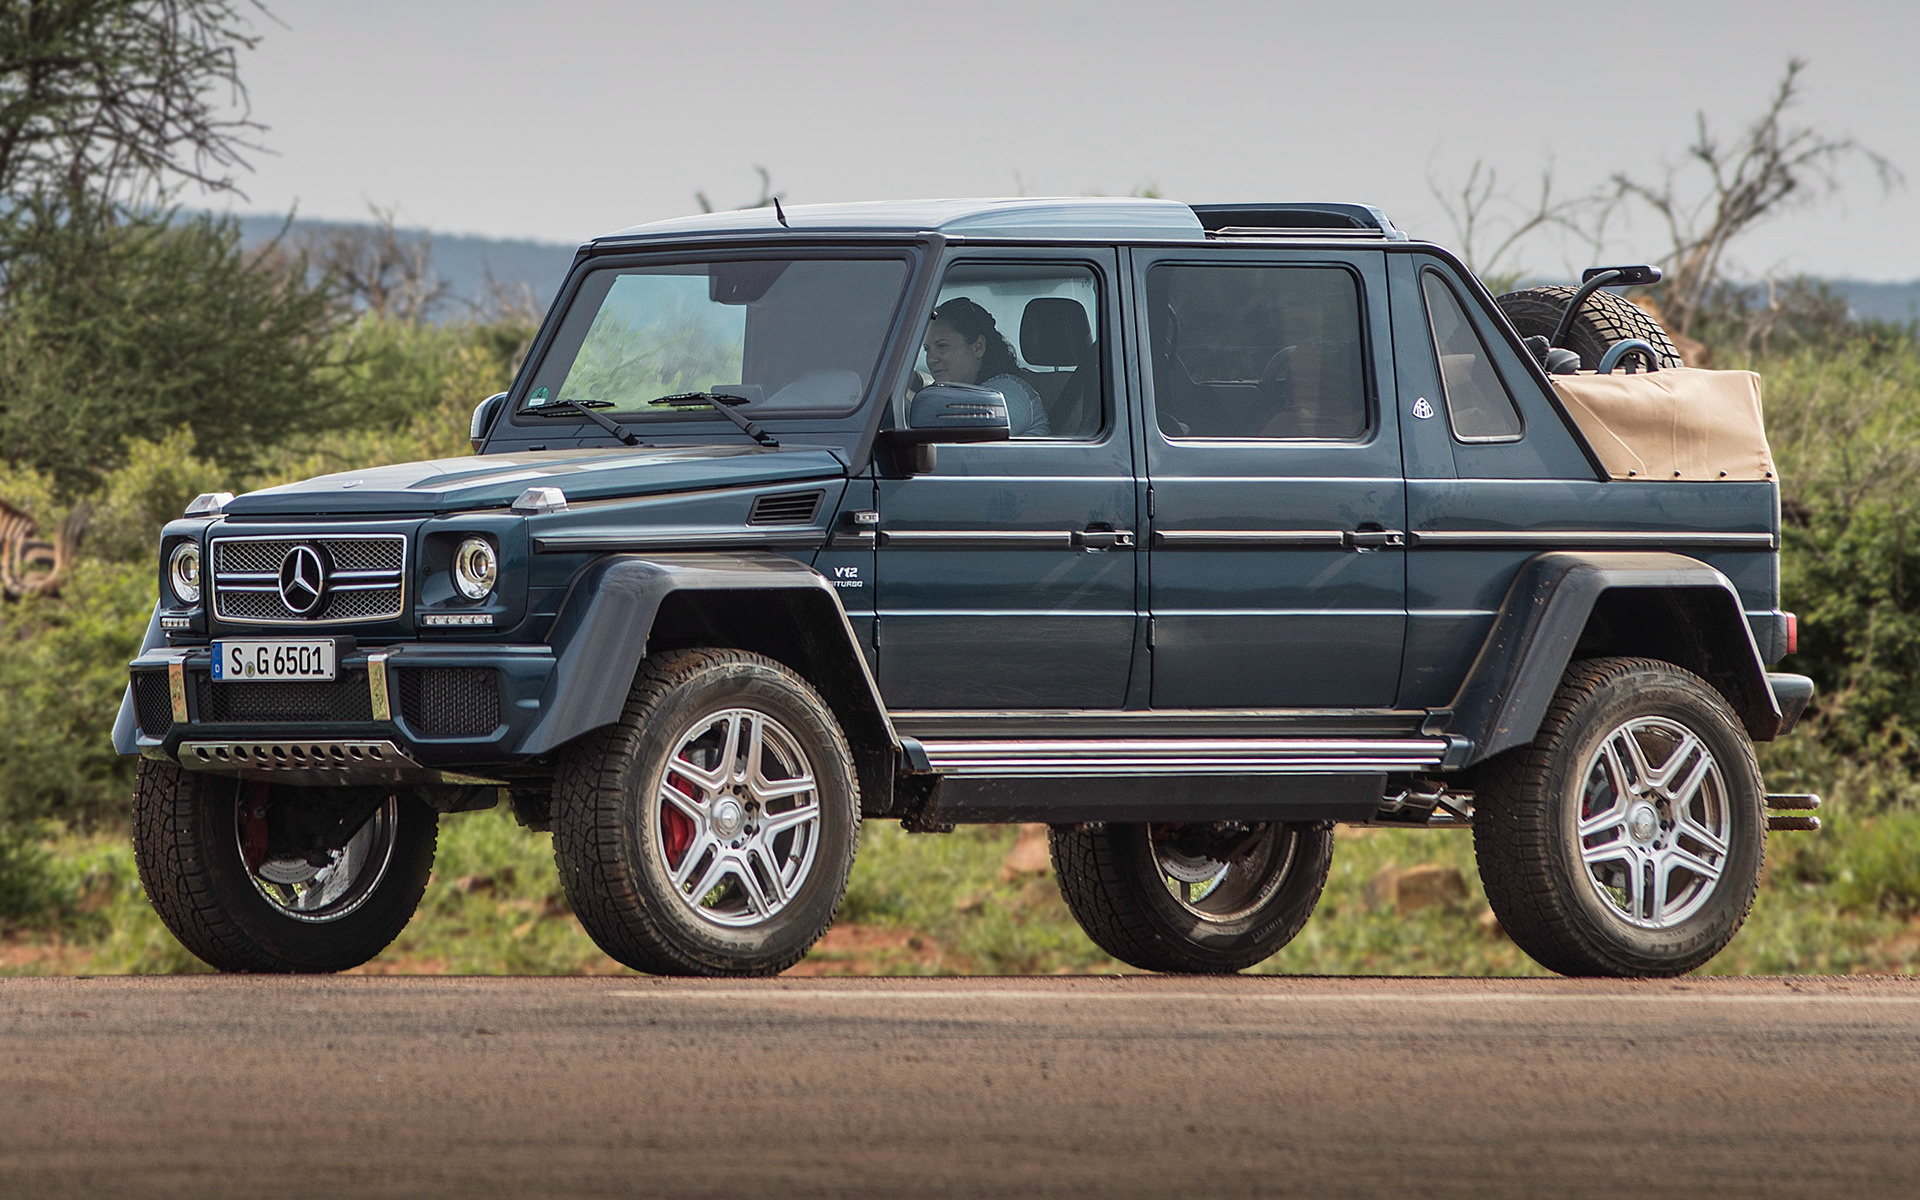 2017 Mercedes Maybach G Class Landaulet   Wallpapers and HD Images 1920x1200